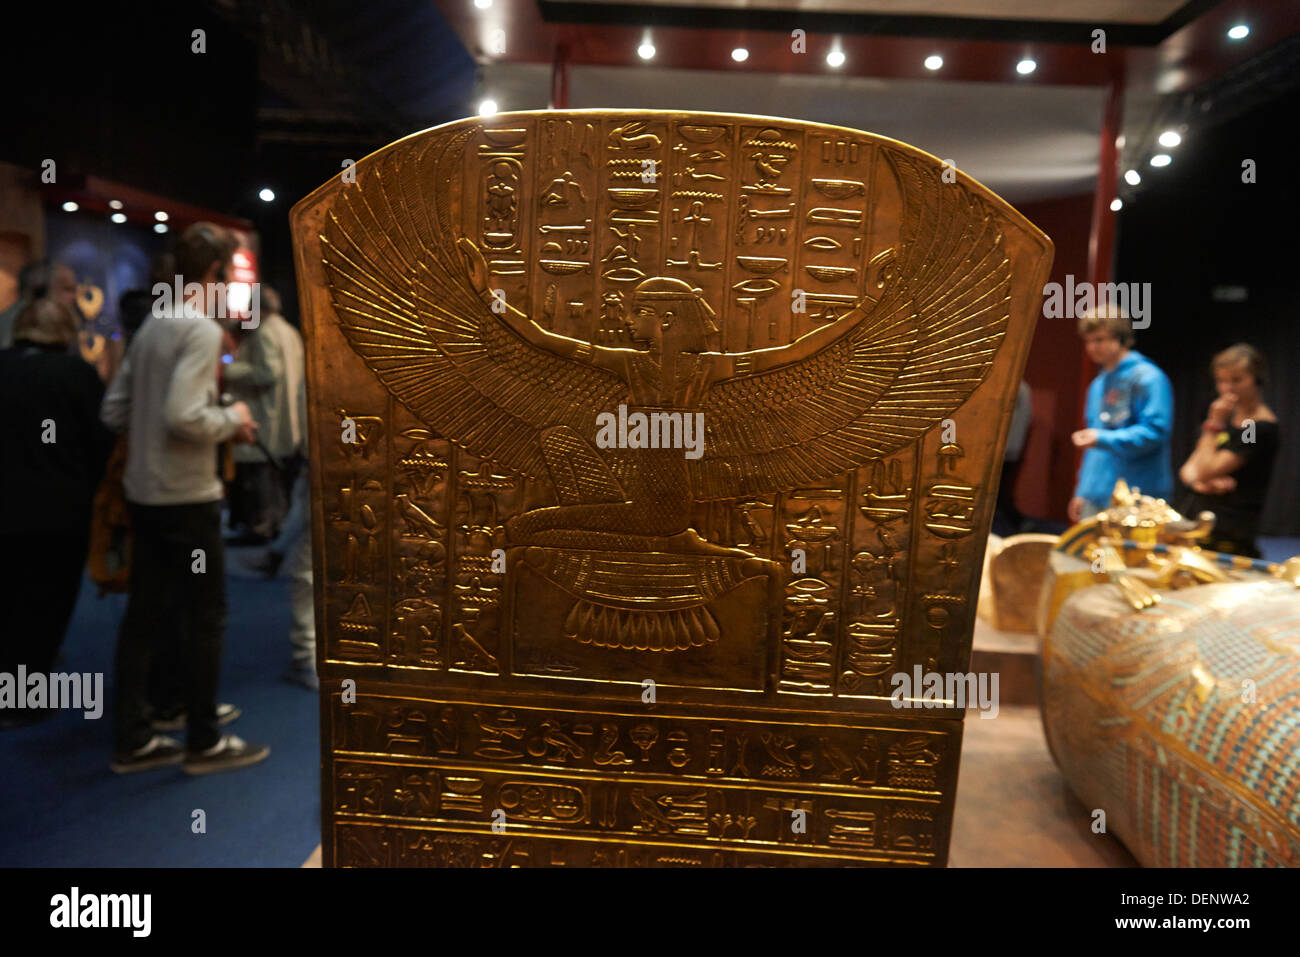 Tempting Trouble's Tales: King Tut-ing |King Tut And His Treasures